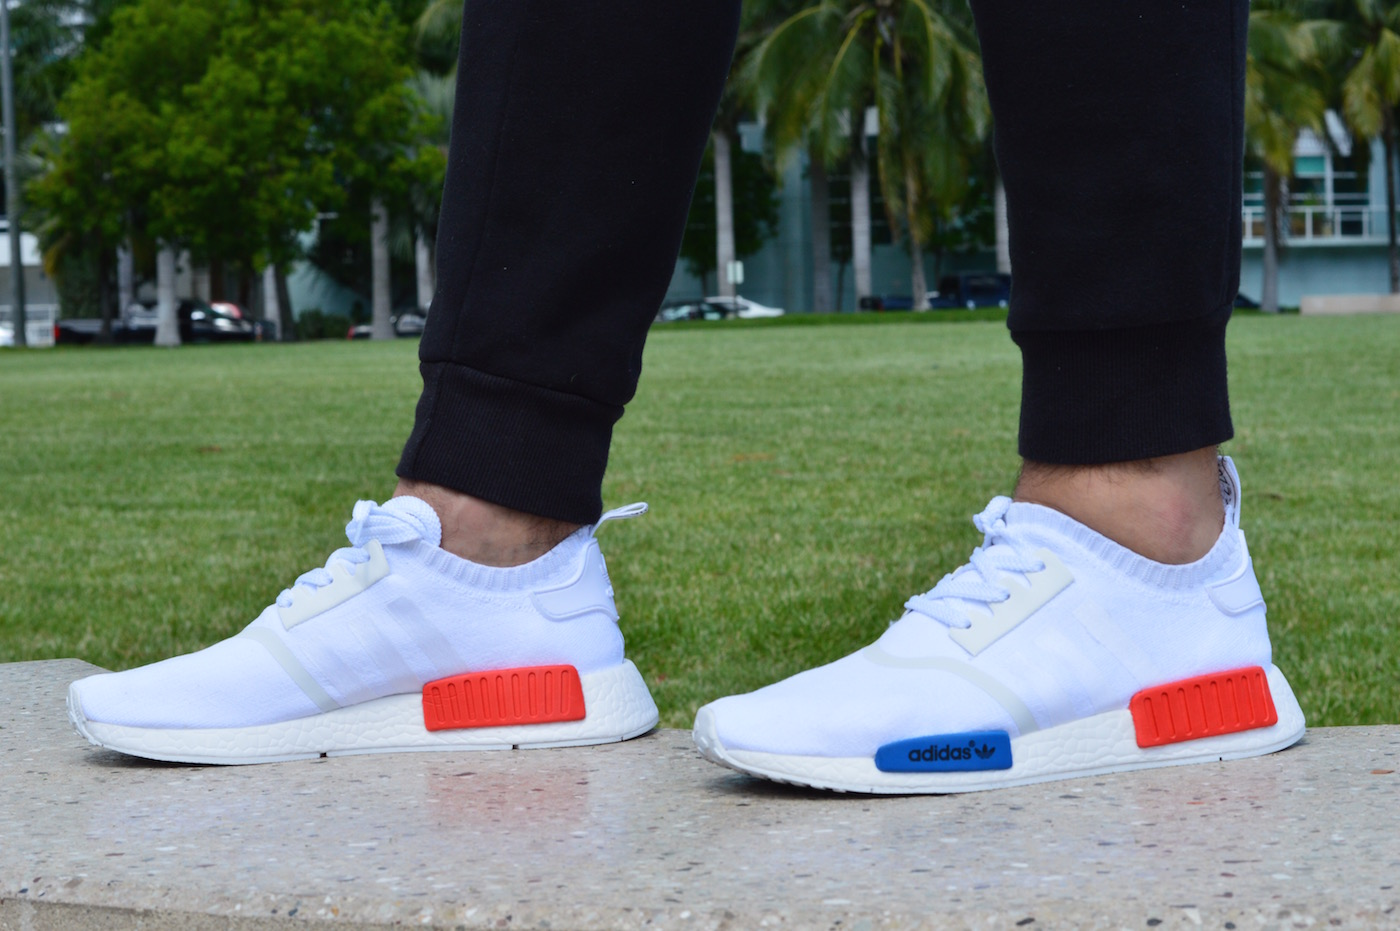 Adidas Nmd All White On Feet